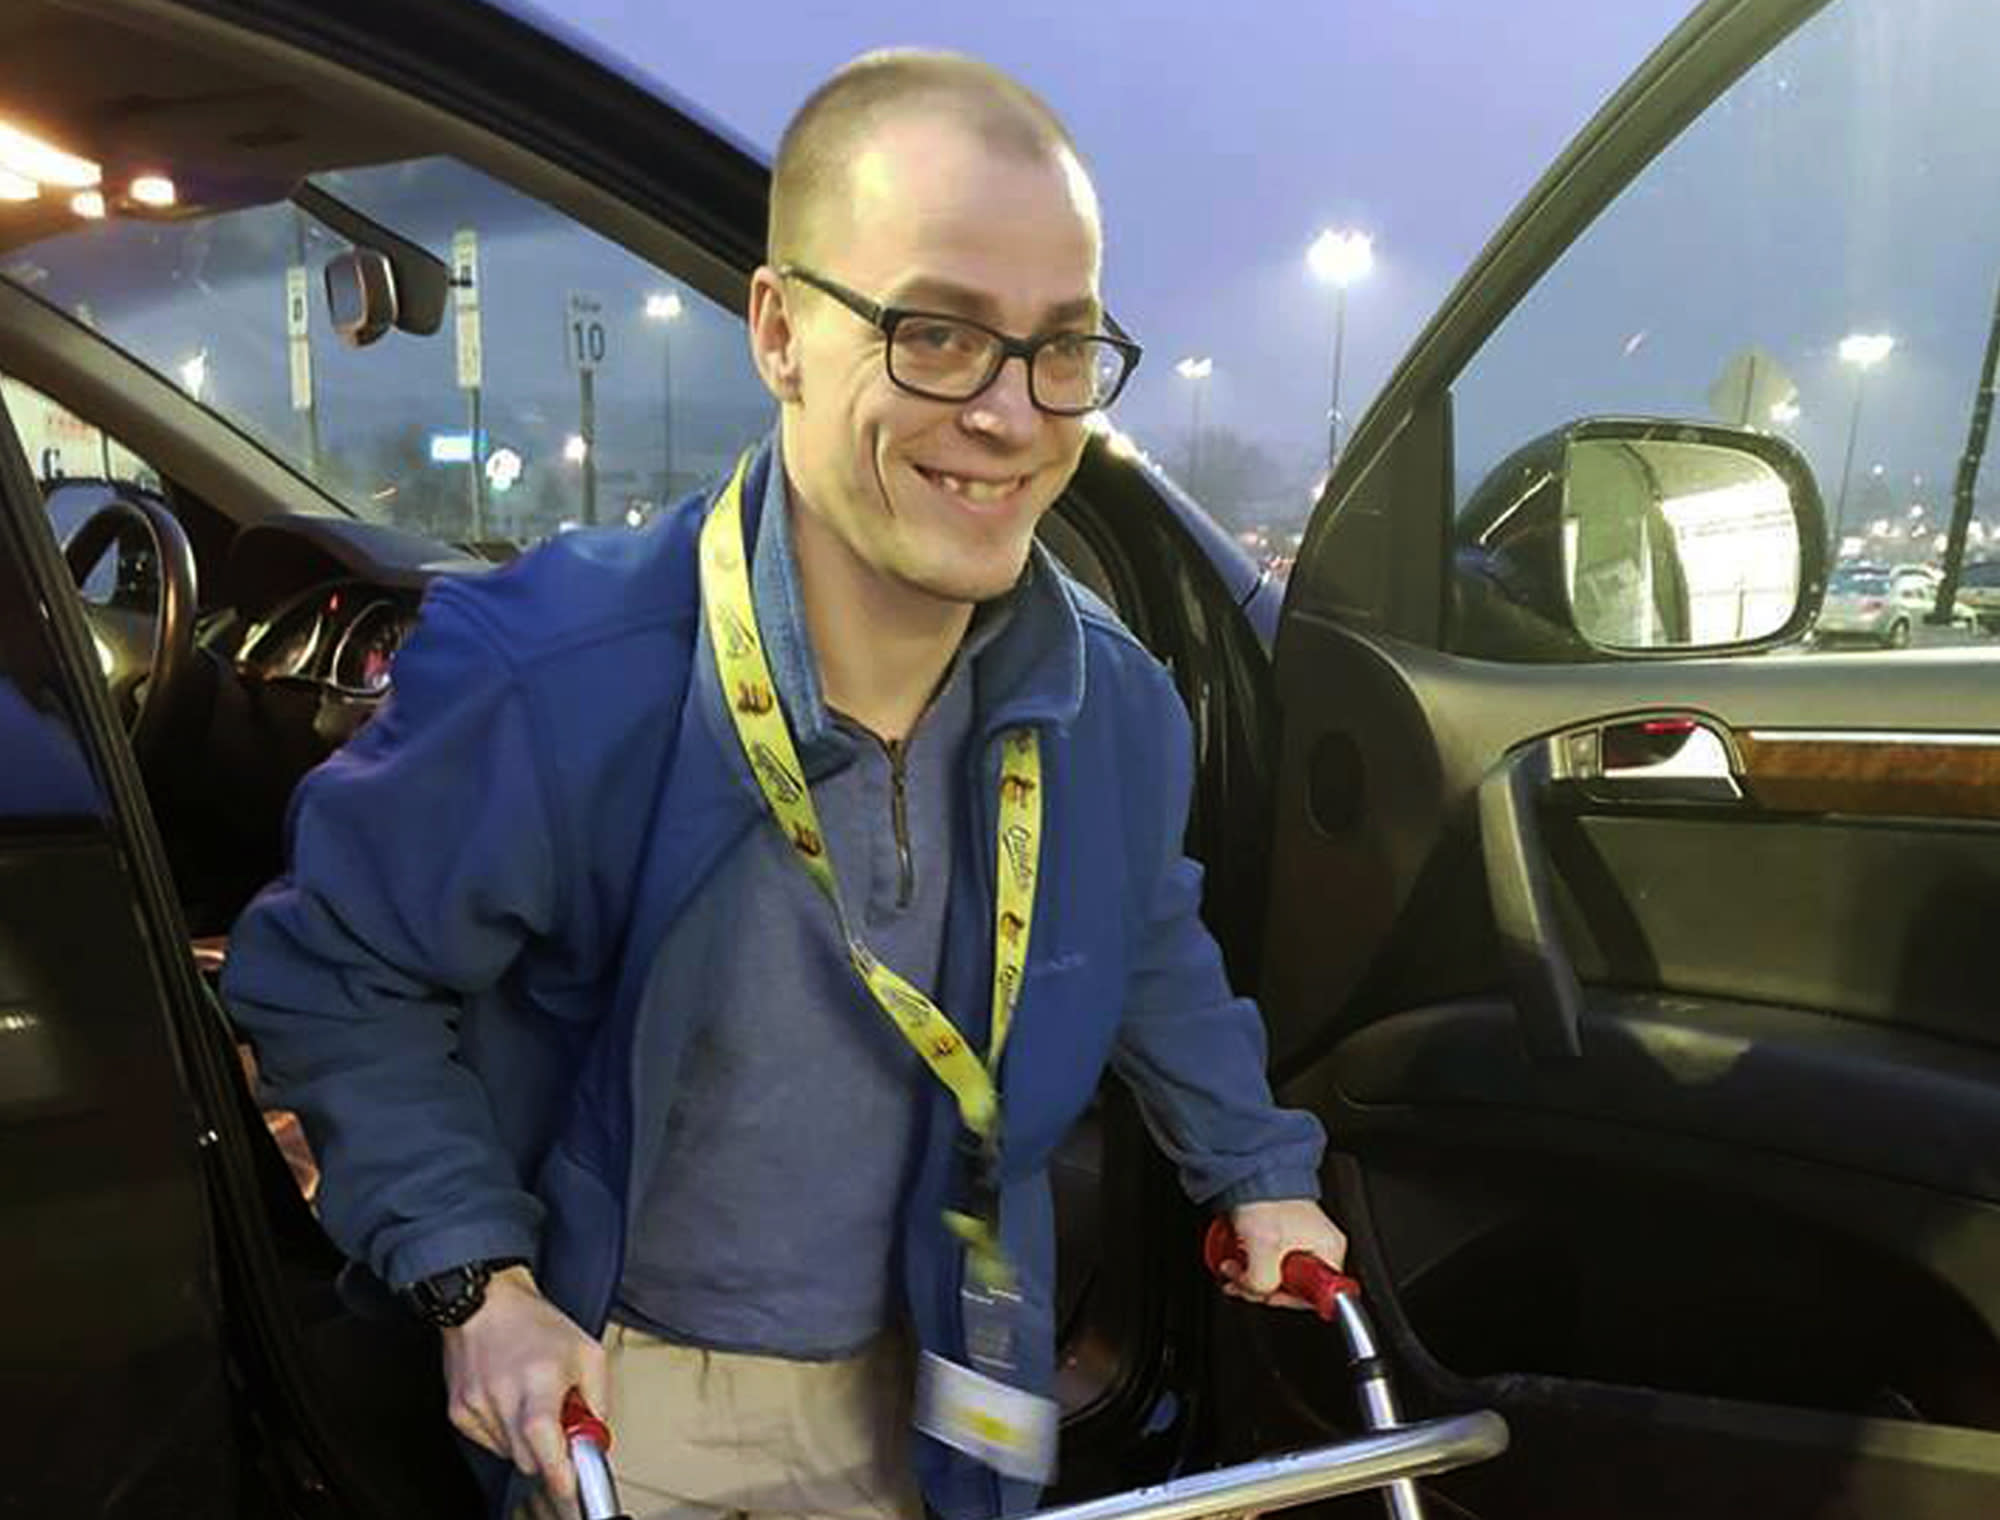 Escaping Disability Trap >> Disabled Greeter Meets With Walmart About Job No Resolution